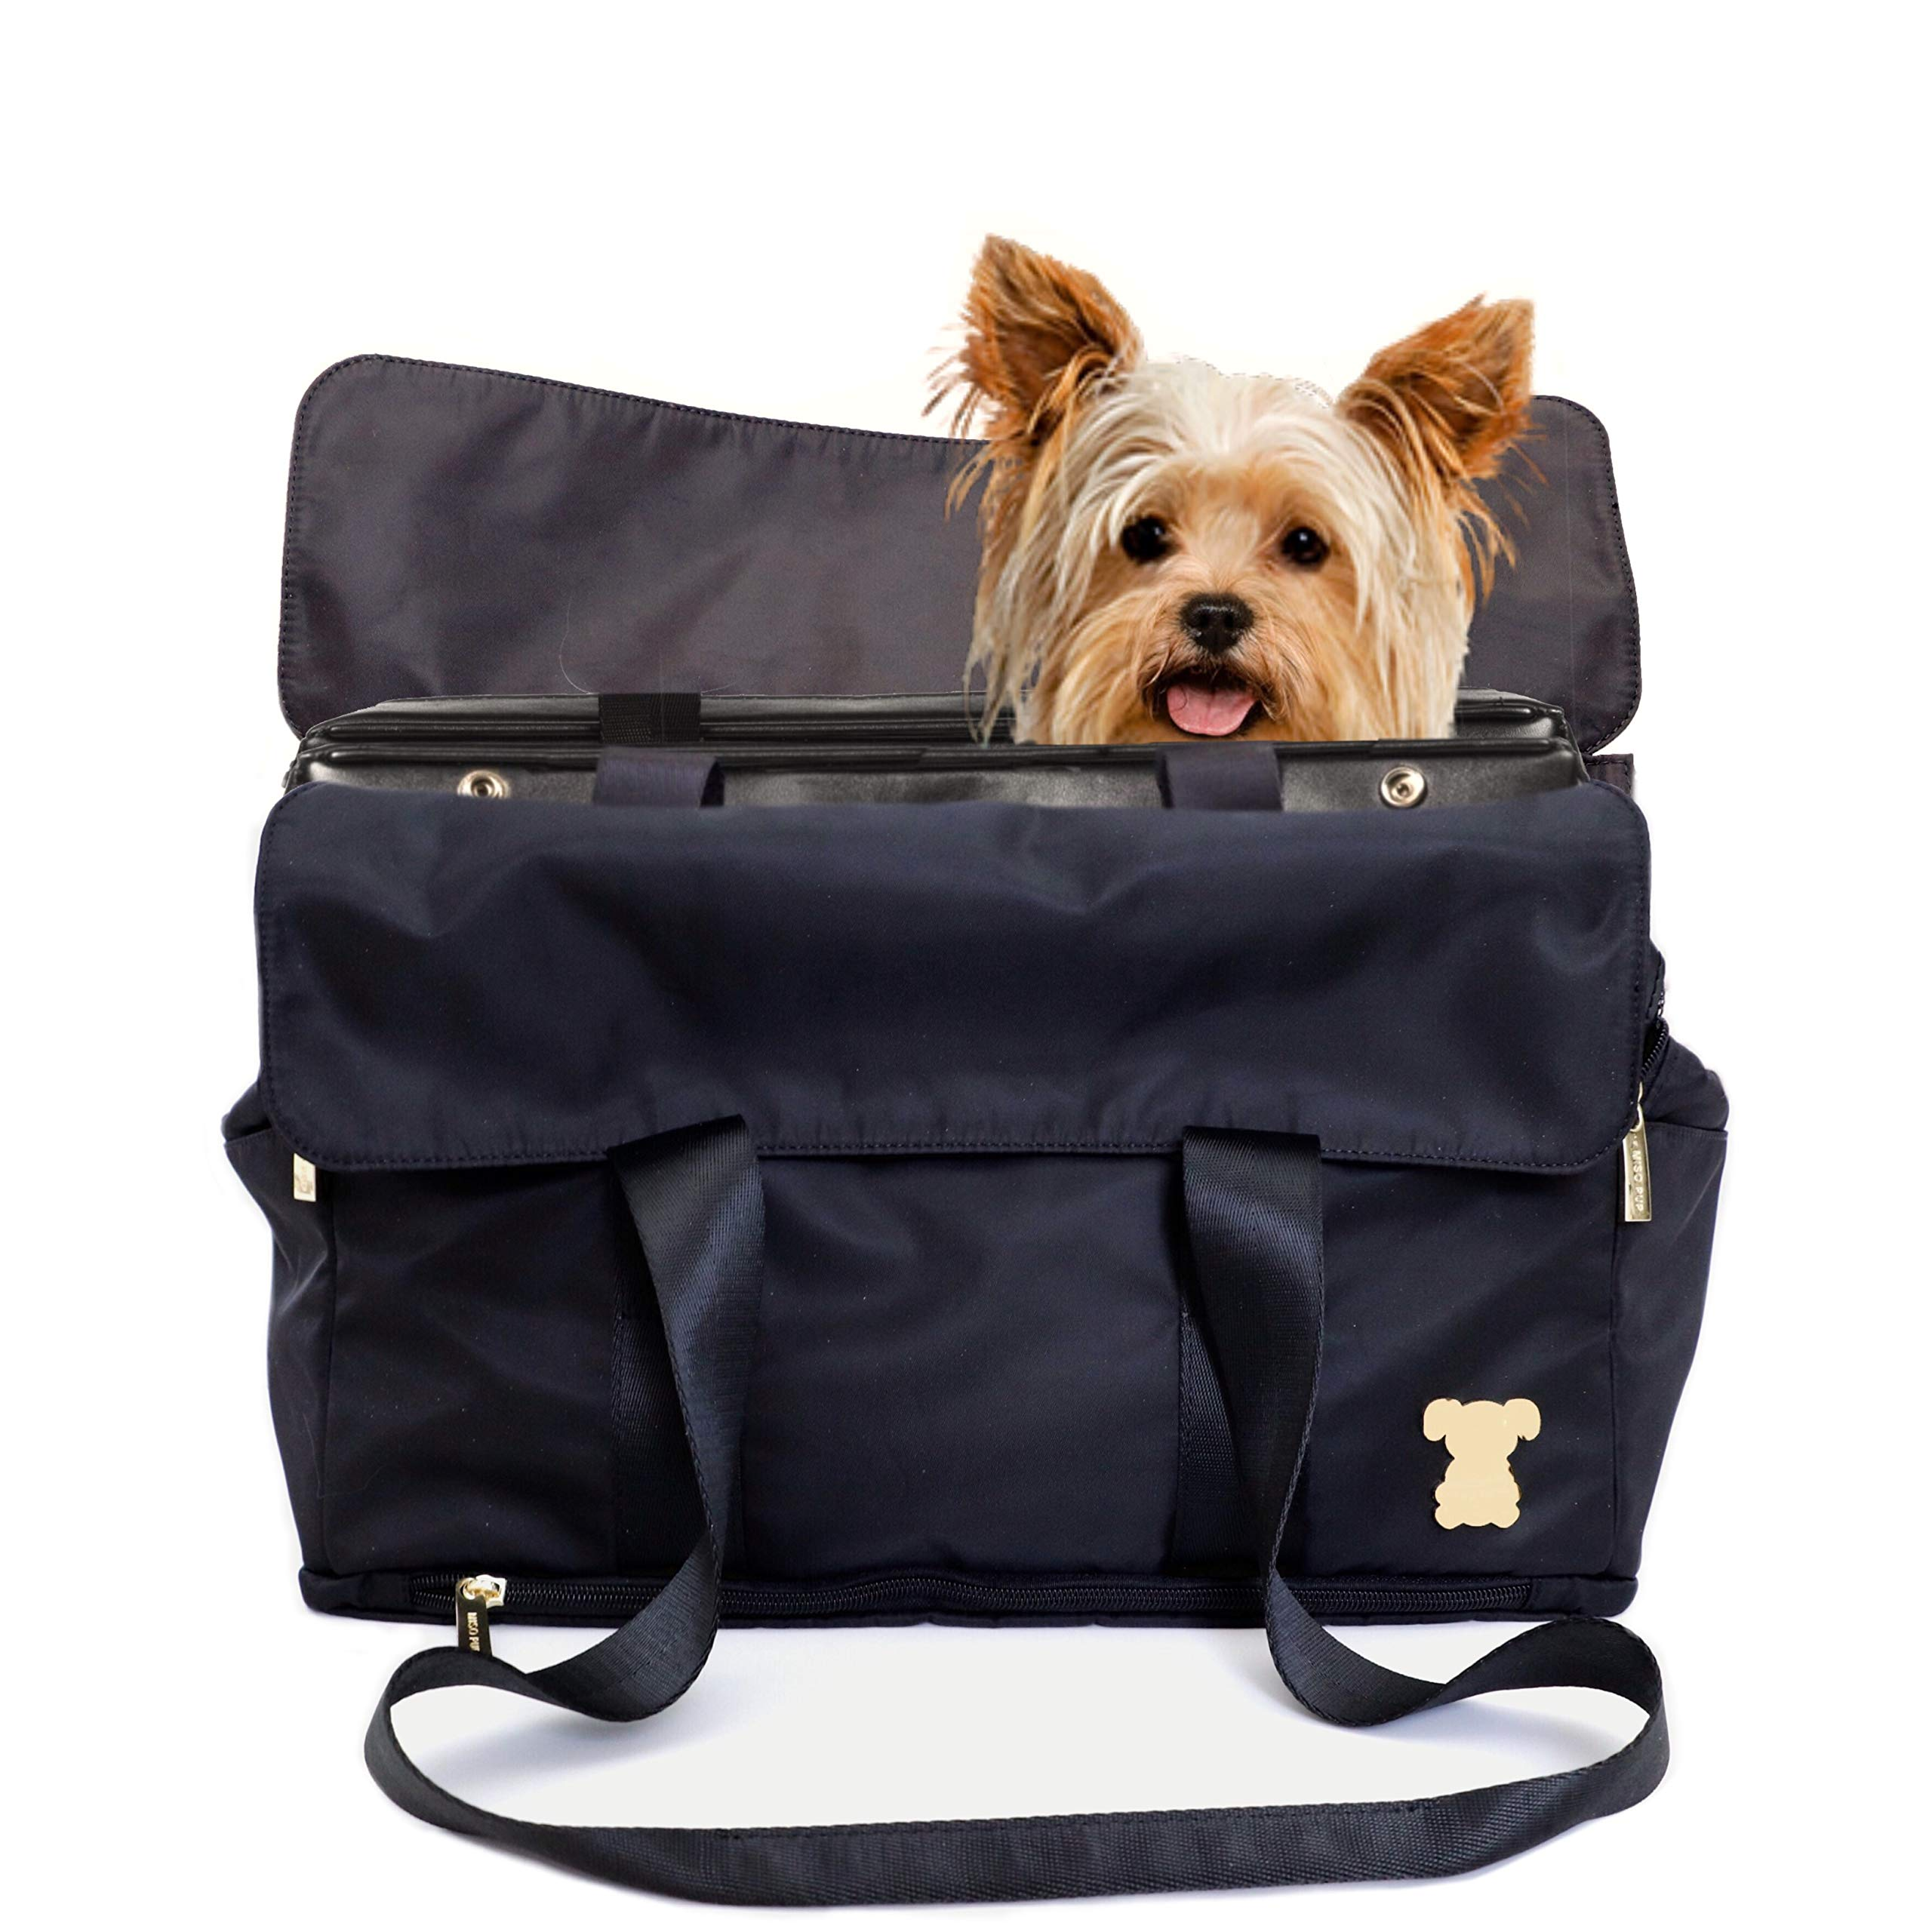 MISO PUP Flap Tote Interchangeable Airline Approved Pet Carrier Combo with Large Document Pockets for Small Dogs (Pet Carrier Base & Shell Tote)